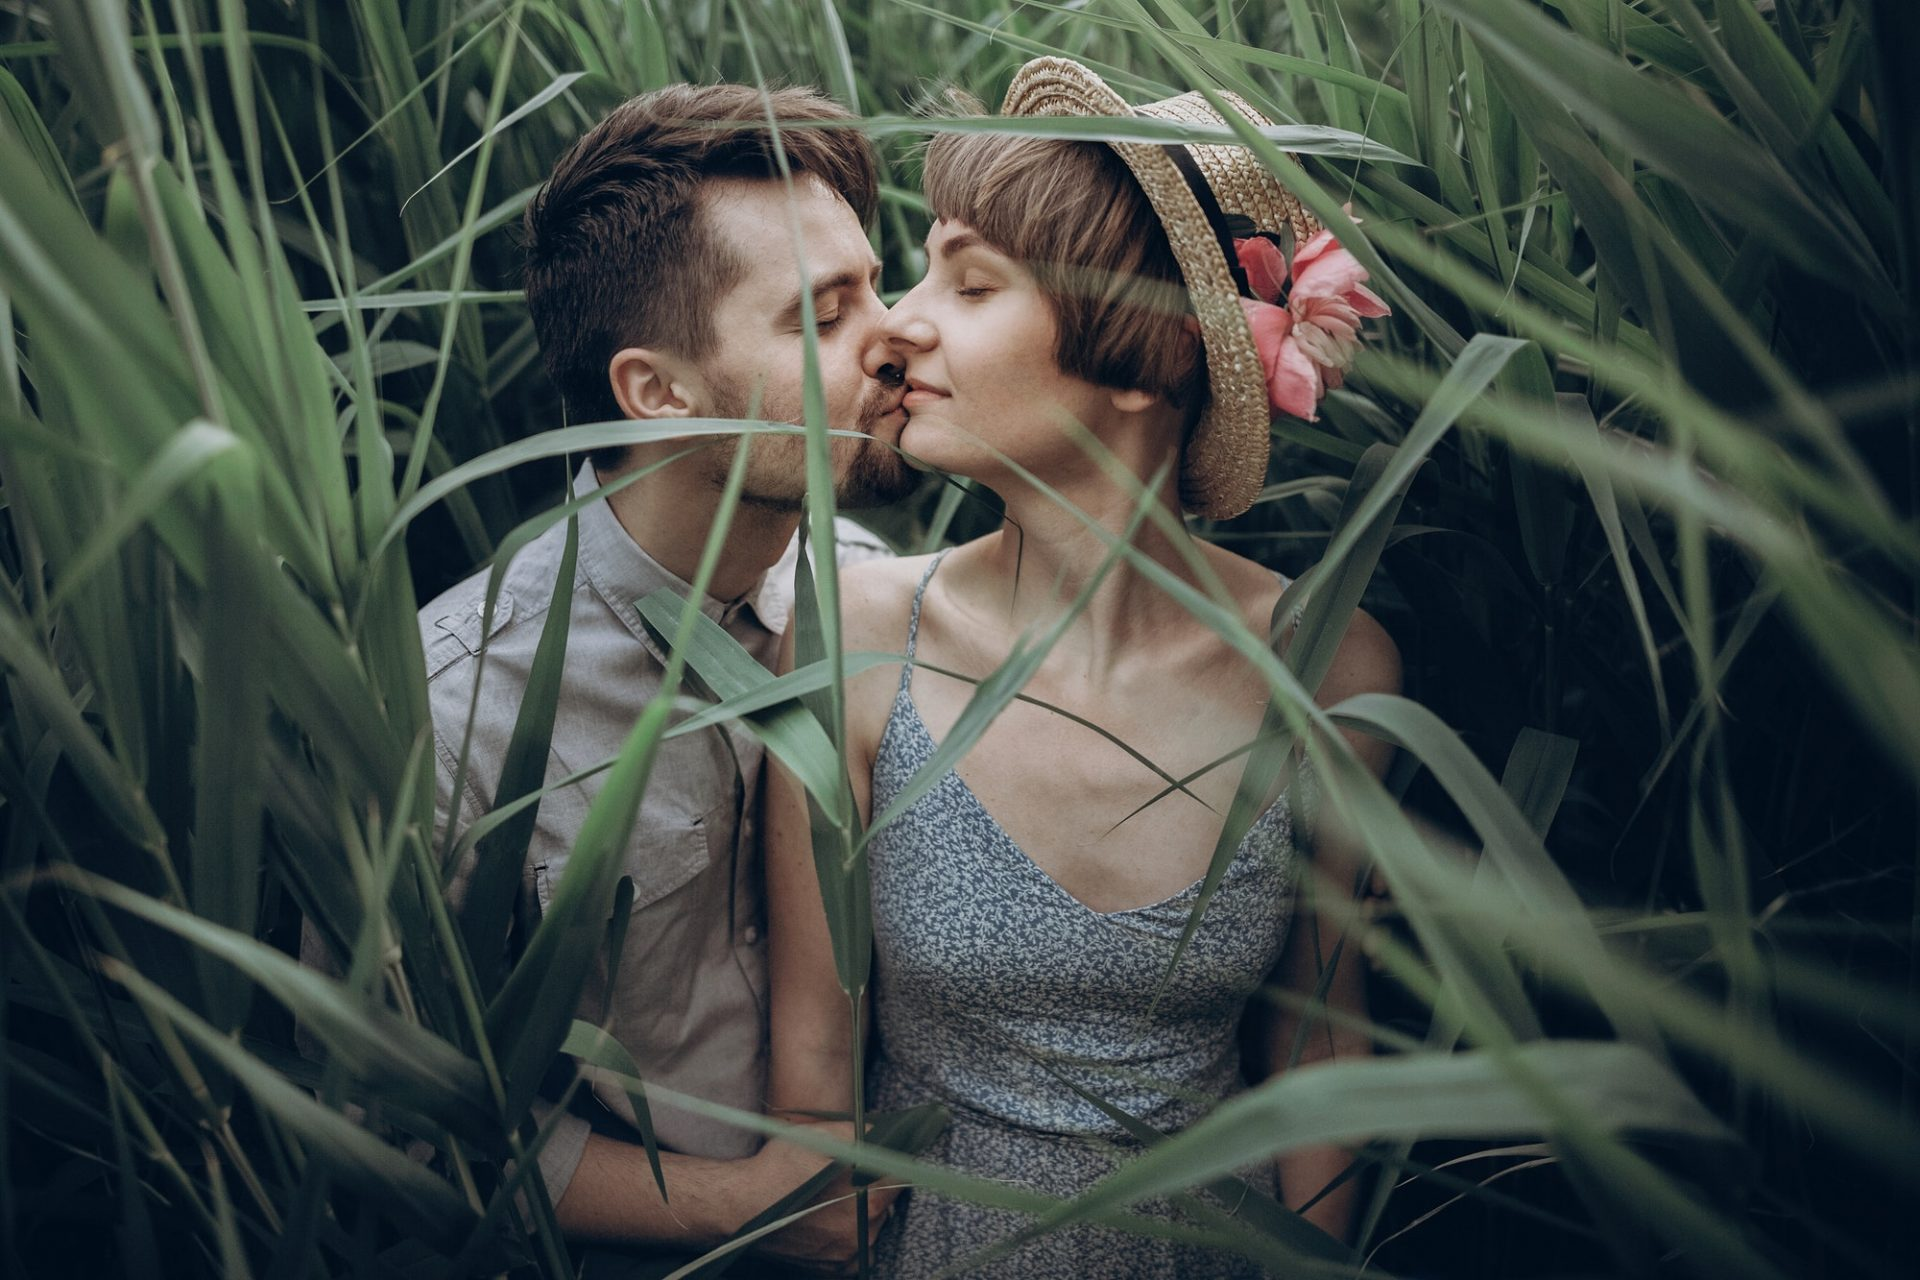 Stylish rustic bride and groom embracing in windy high reed